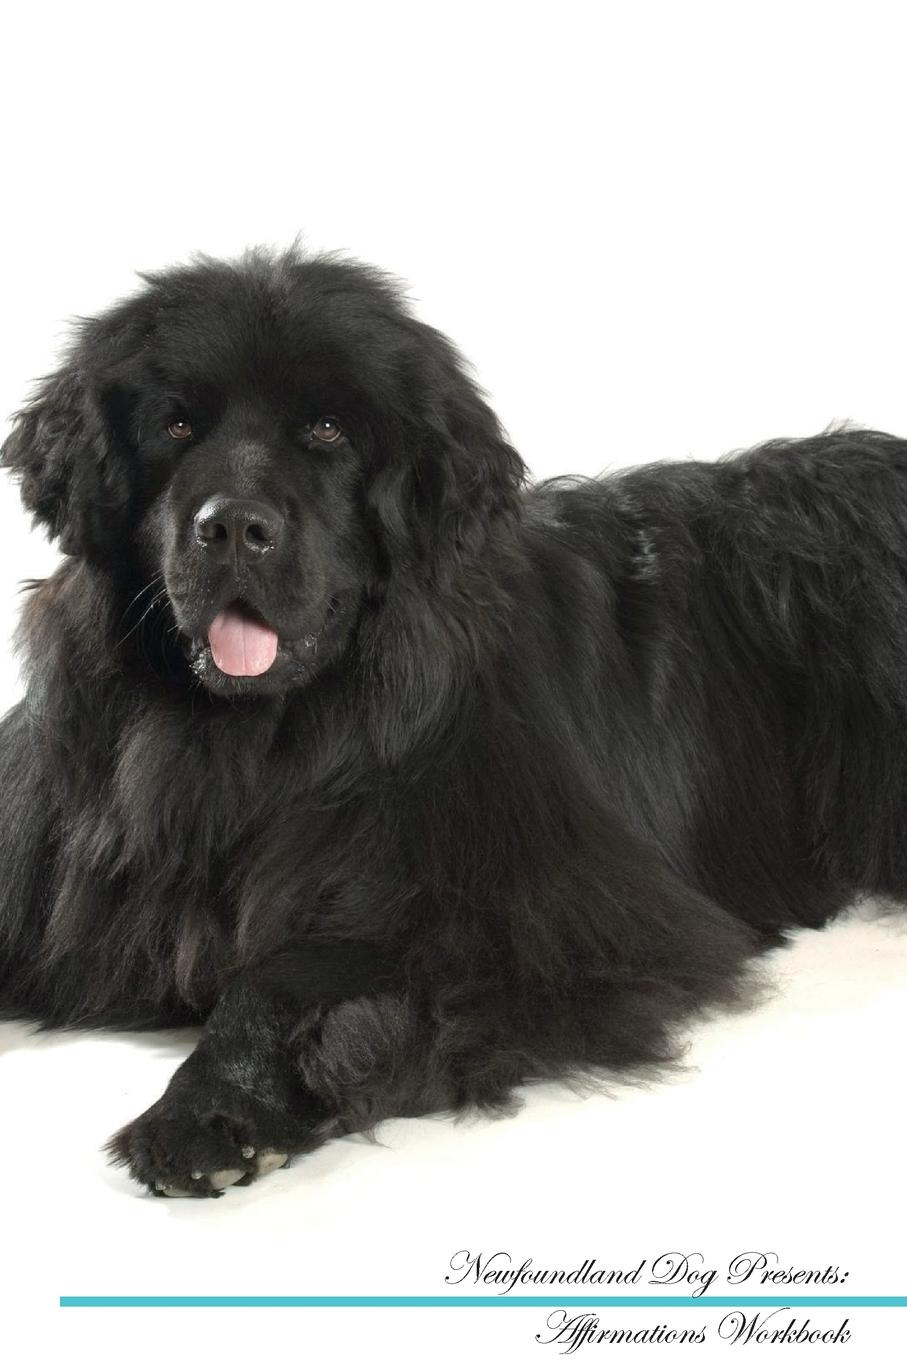 Live Positivity Newfoundland Dog Affirmations Workbook Newfoundland Dog Presents. Positive and Loving Affirmations Workbook. Includes: Mentoring Questions, Guidance, Supporting You. branch mary lydia a visit to newfoundland